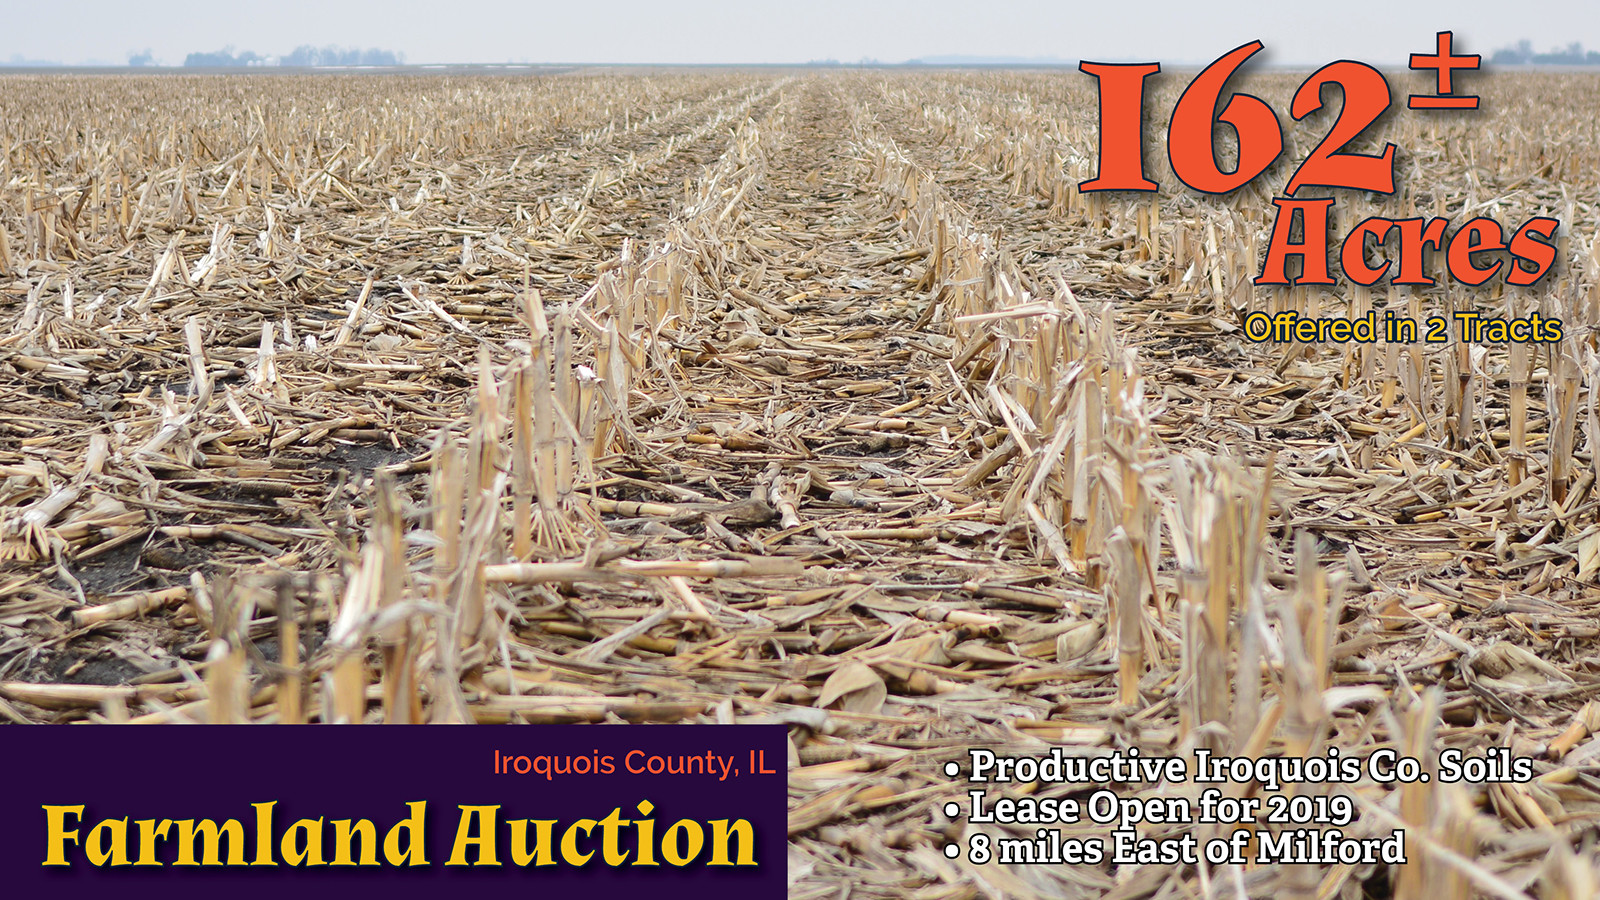 03.20.19 - Iroquois County IL - cover photo